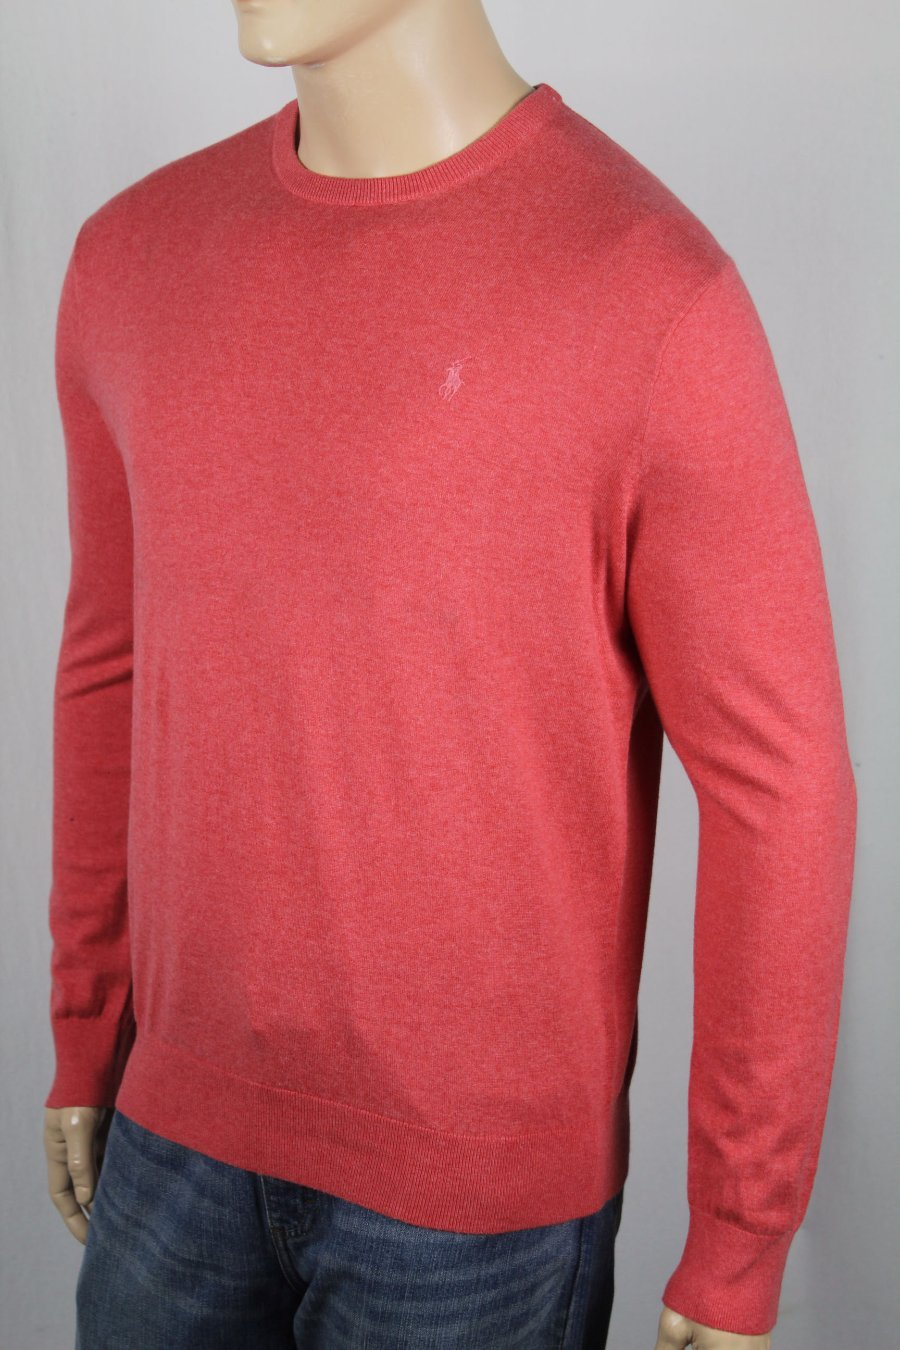 b38e9f54b Details about Polo Ralph Lauren Pink Heather Cashmere Cotton Crew Neck  Sweater NWT